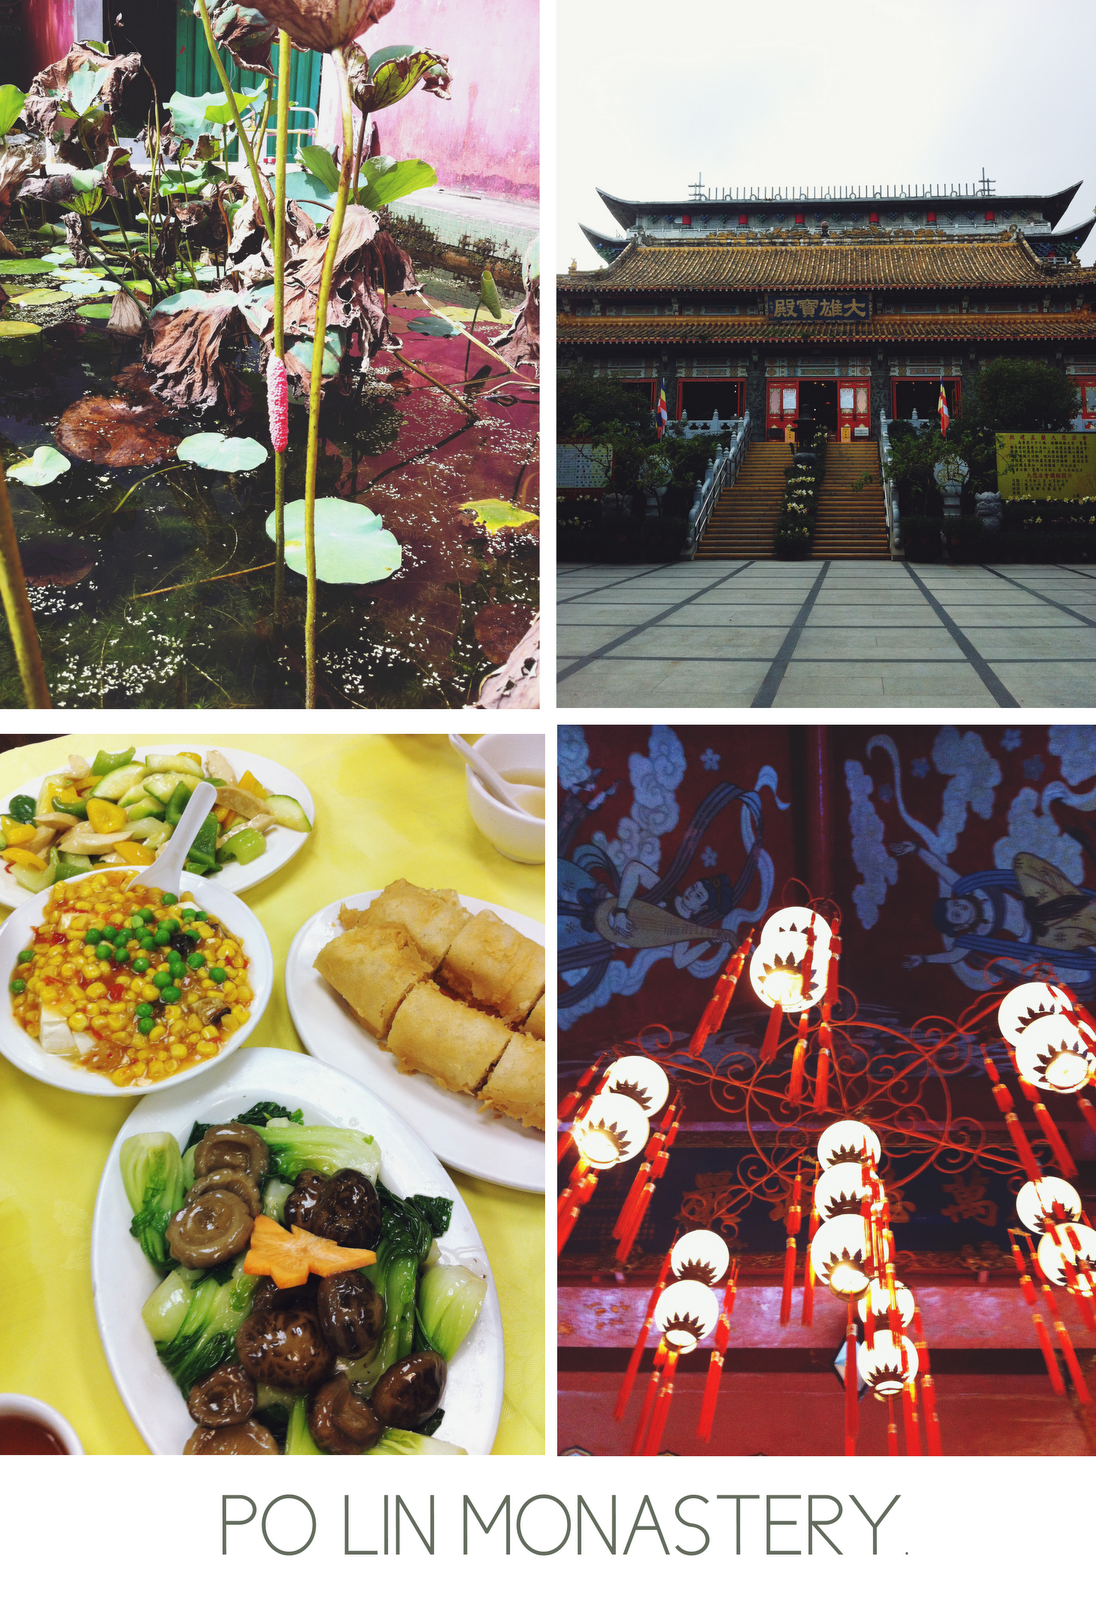 beautiful Po Lin Monastery, plants and architecture and food.